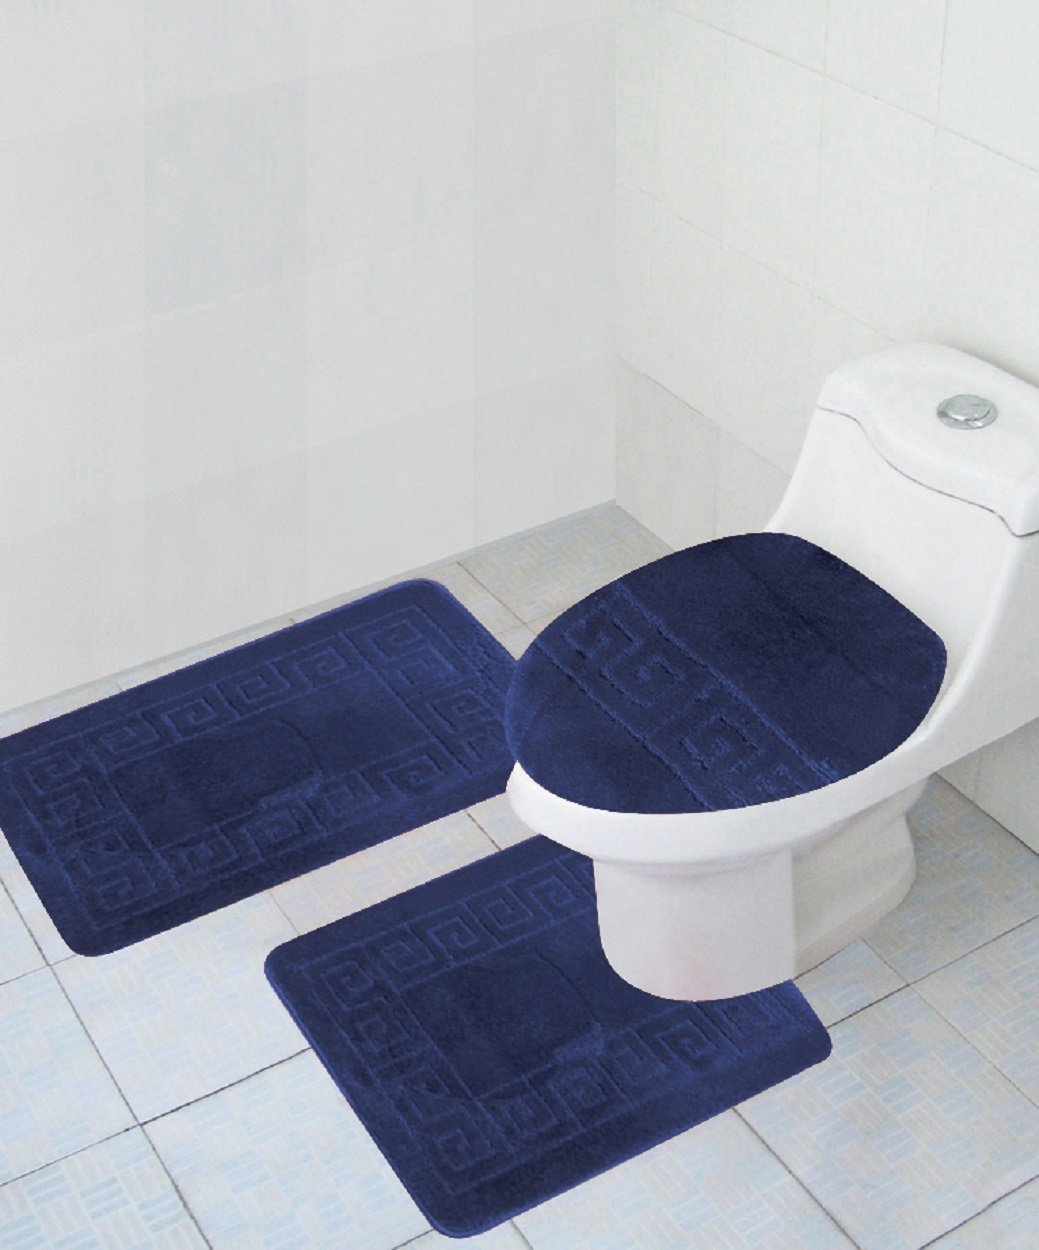 Shop Amazoncom Bath Rugs - Navy blue bath mat for bathroom decorating ideas